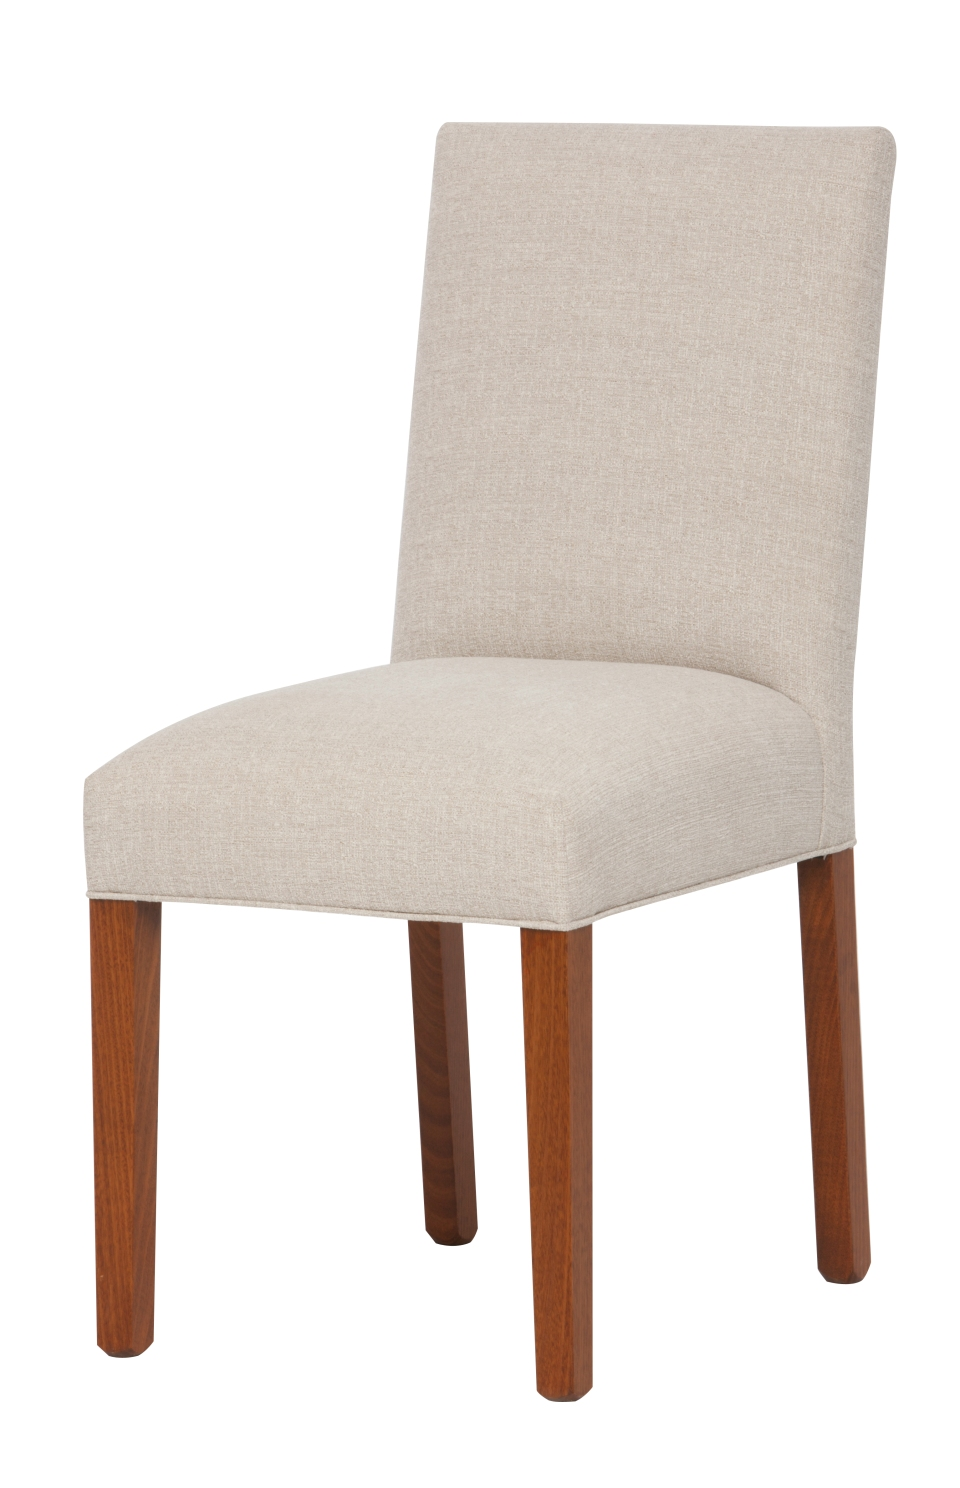 Aspley dining chair